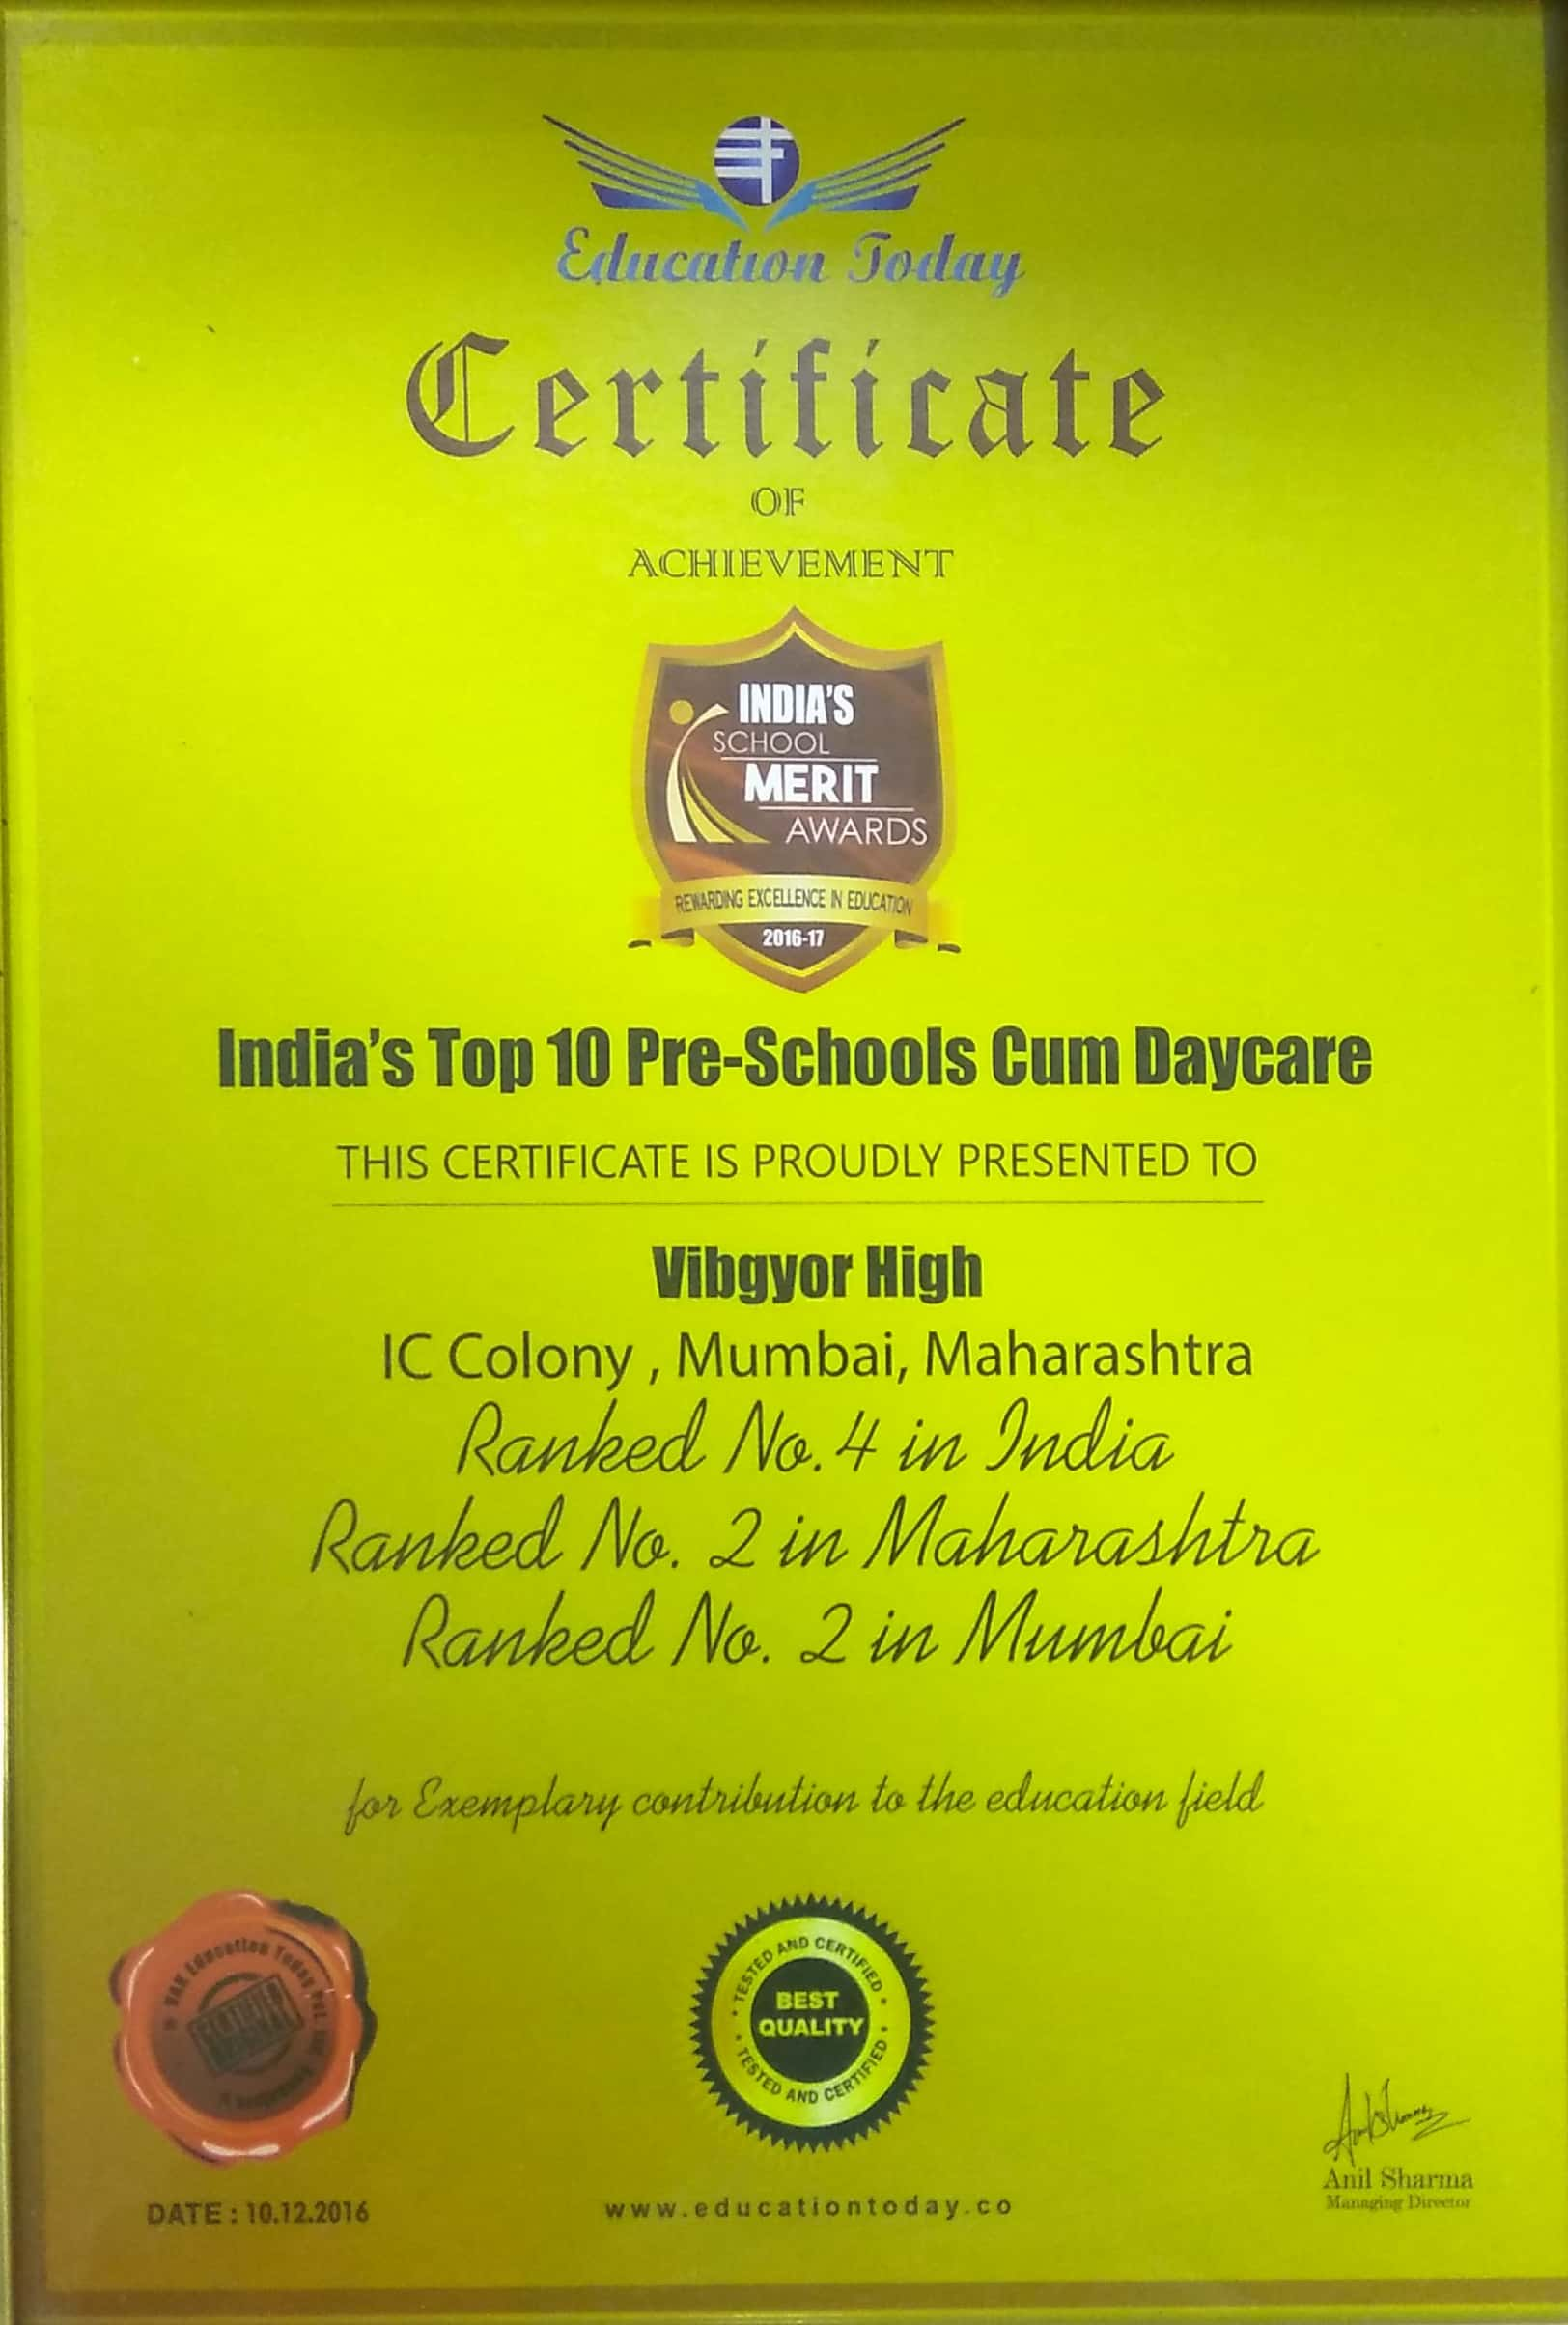 ICSE | CBSE School in Borivali, Mumbai - VIBGYOR High